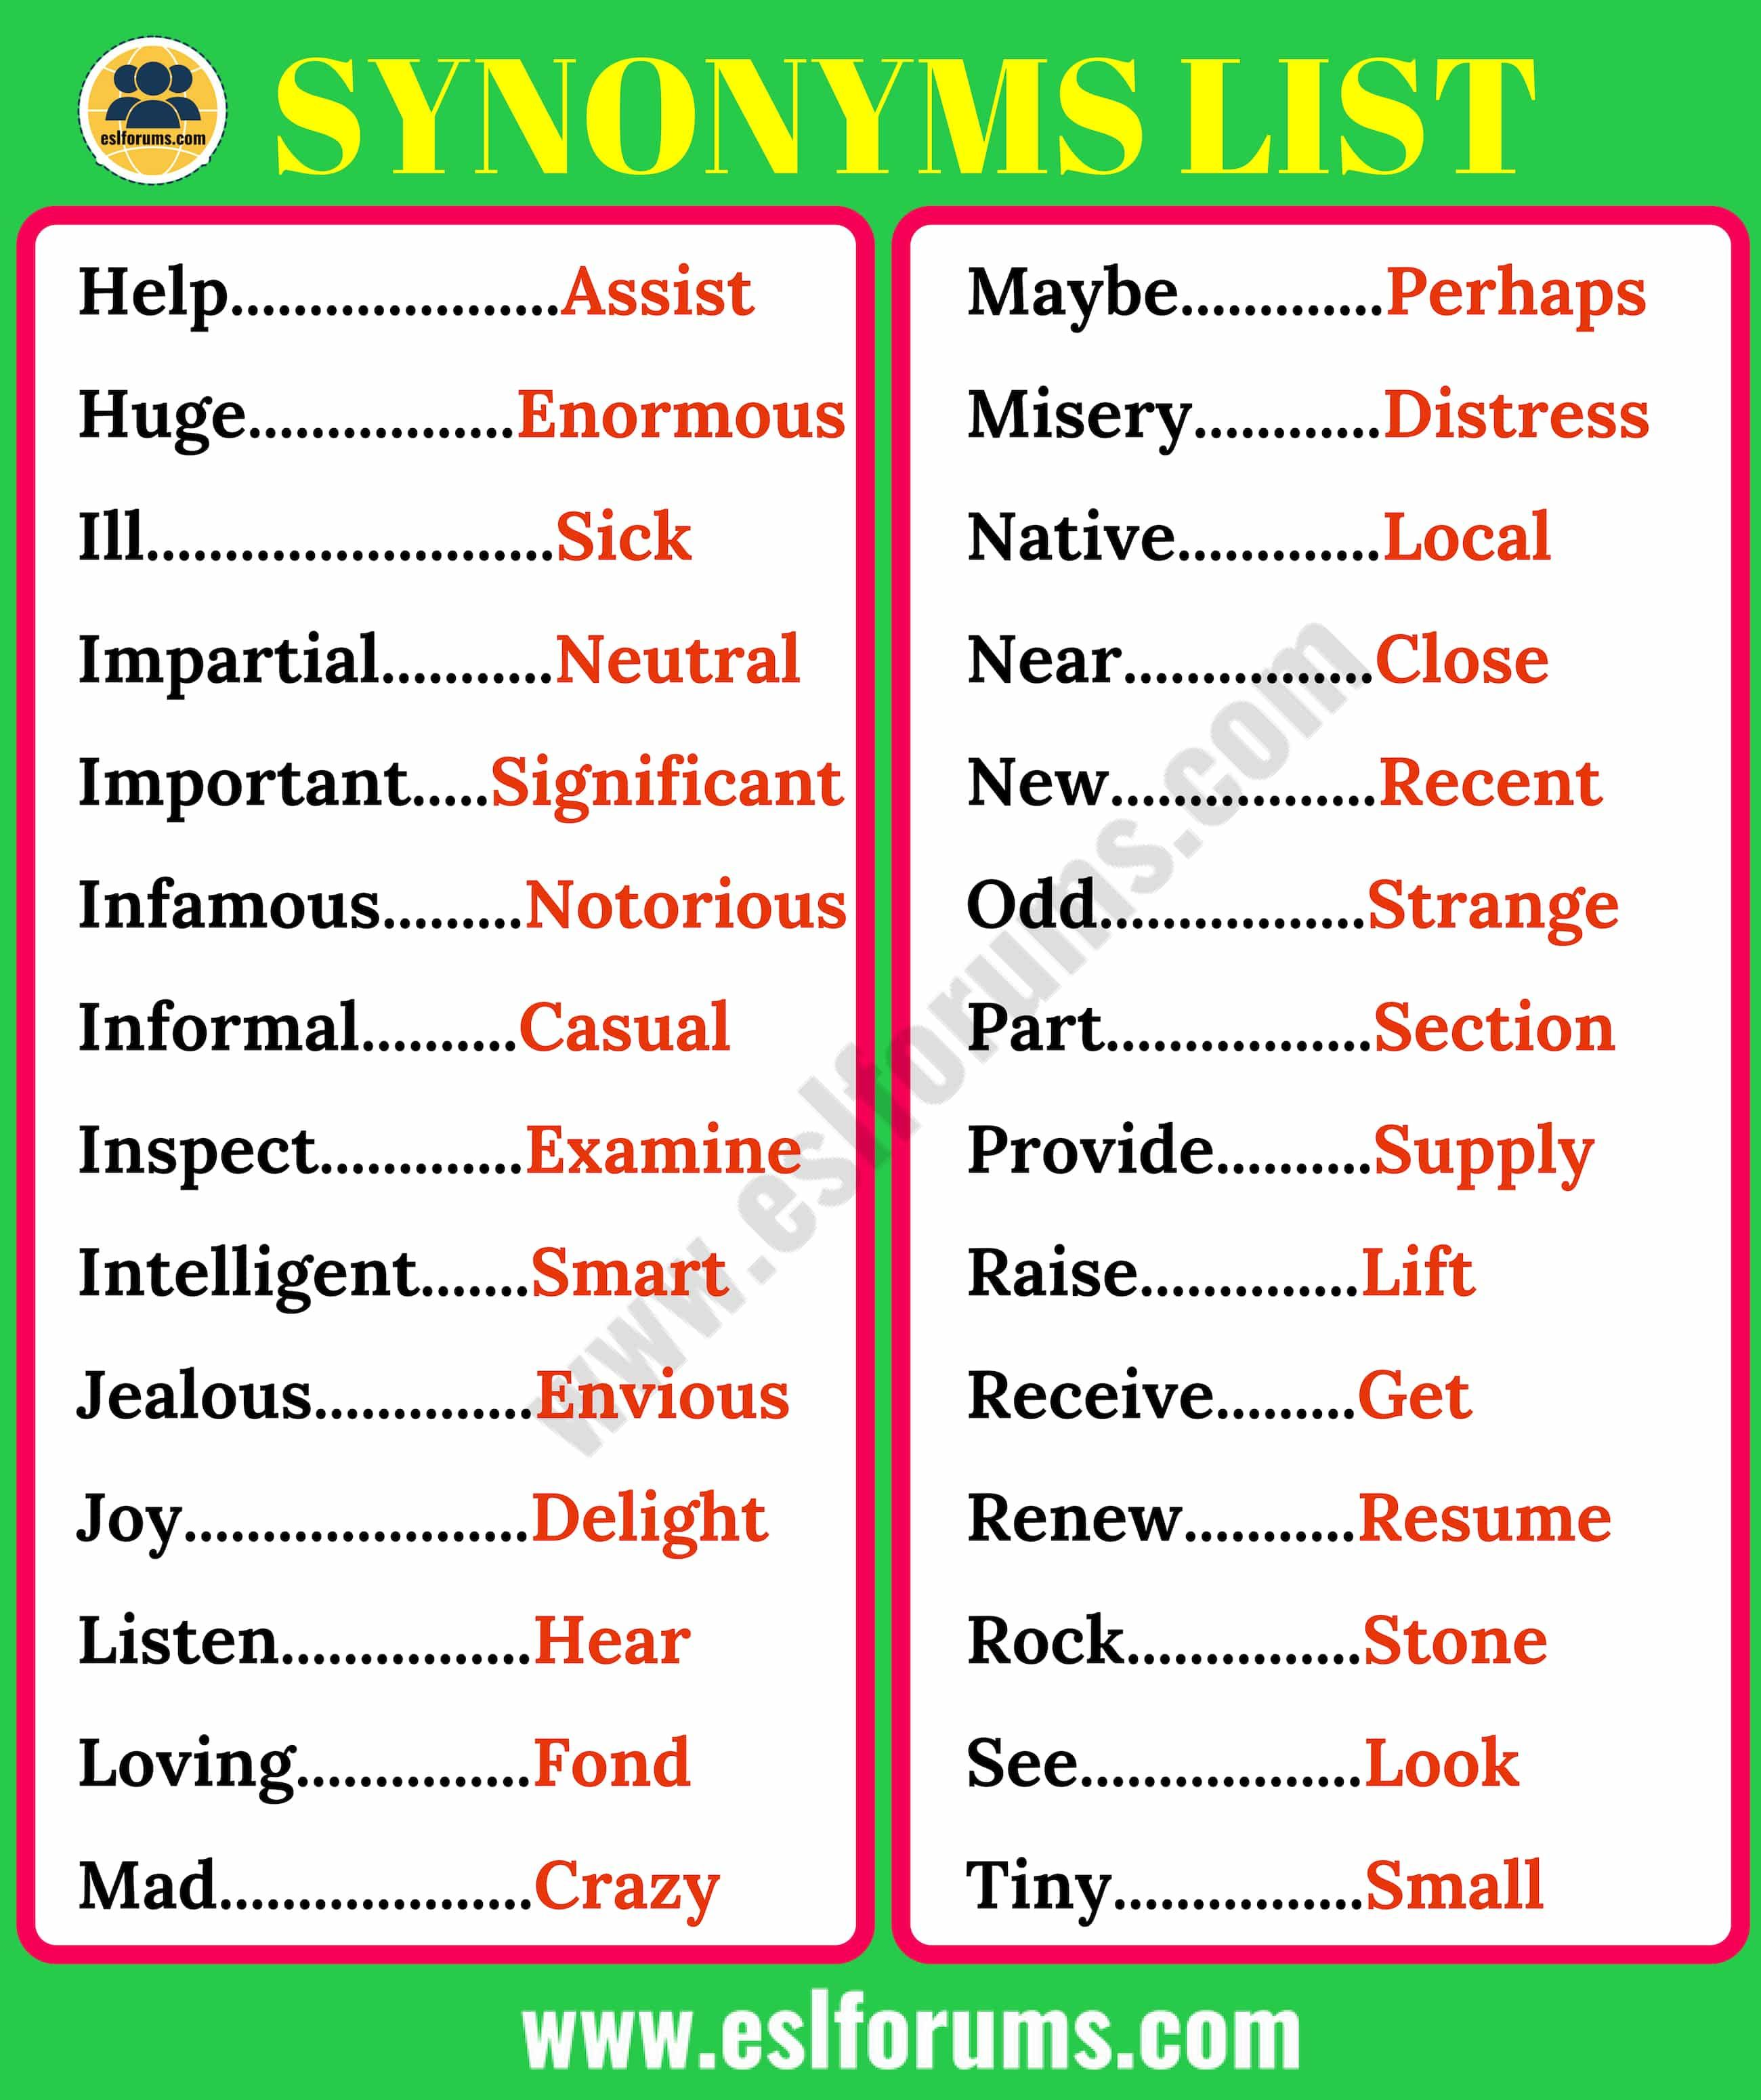 Synonyms List Of 200 Synonyms In English For Esl Learners